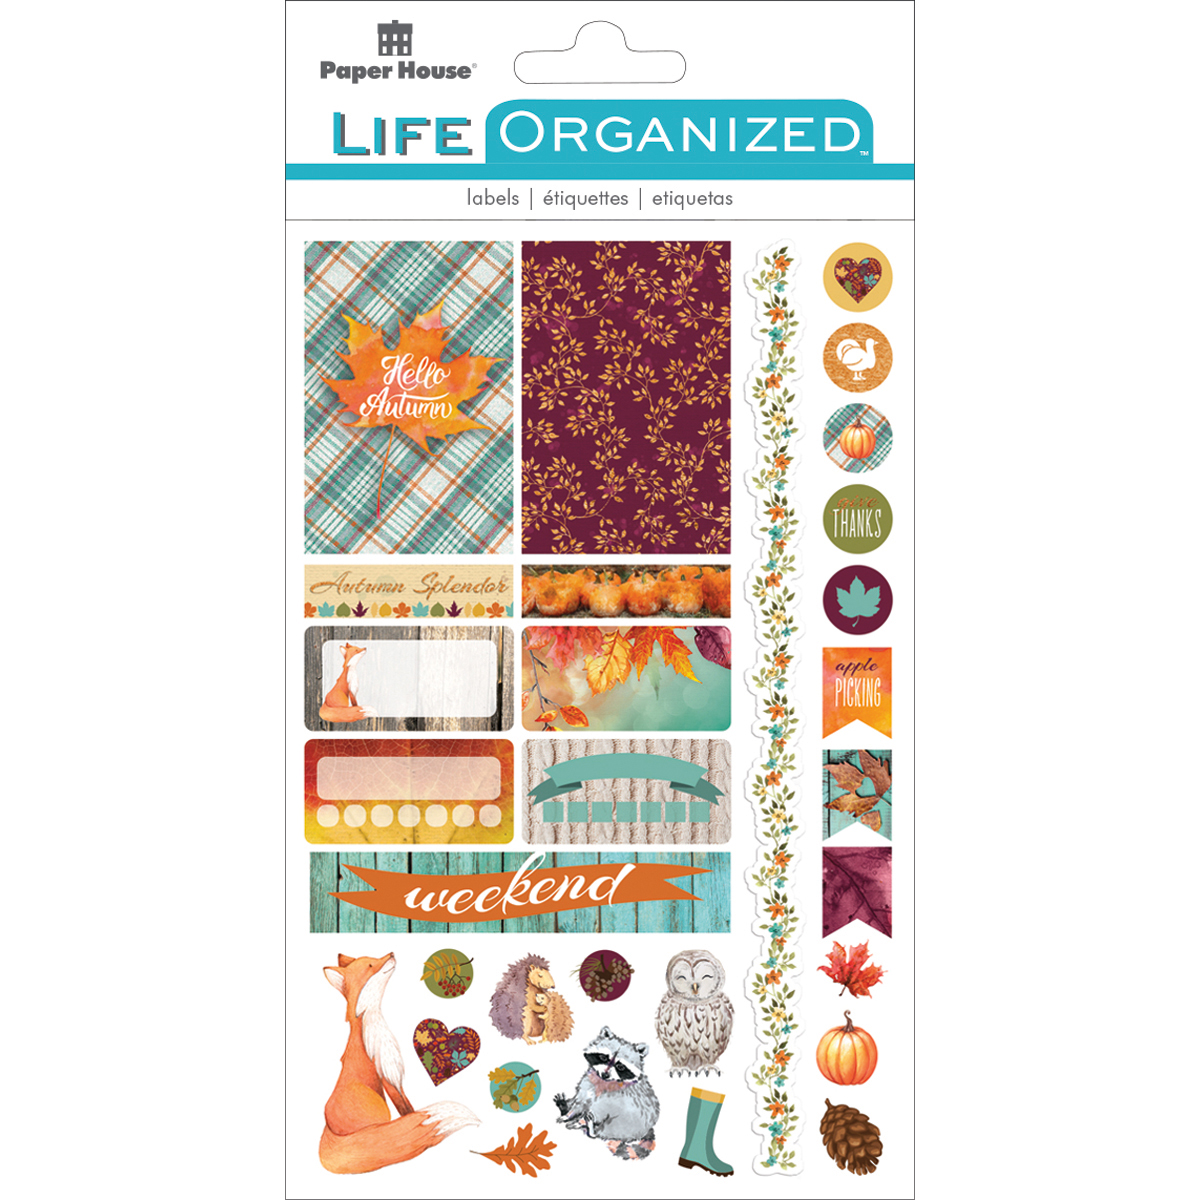 Autumn Woods Fun - Paper House Life Organized Planner Stickers